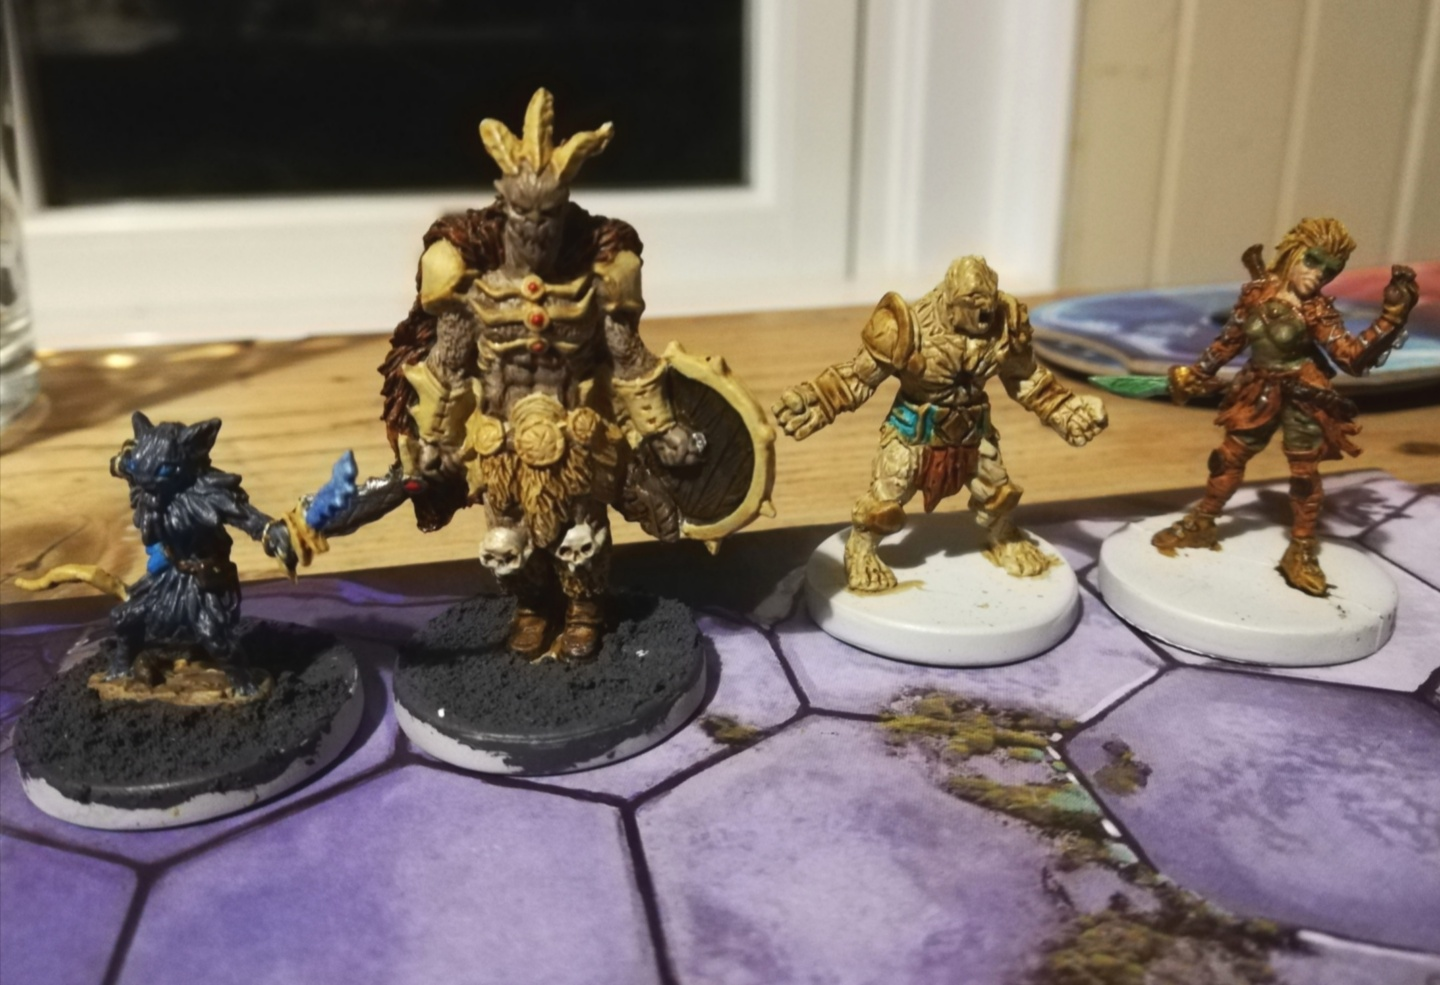 Gloomhaven: My Thoughts So Far!